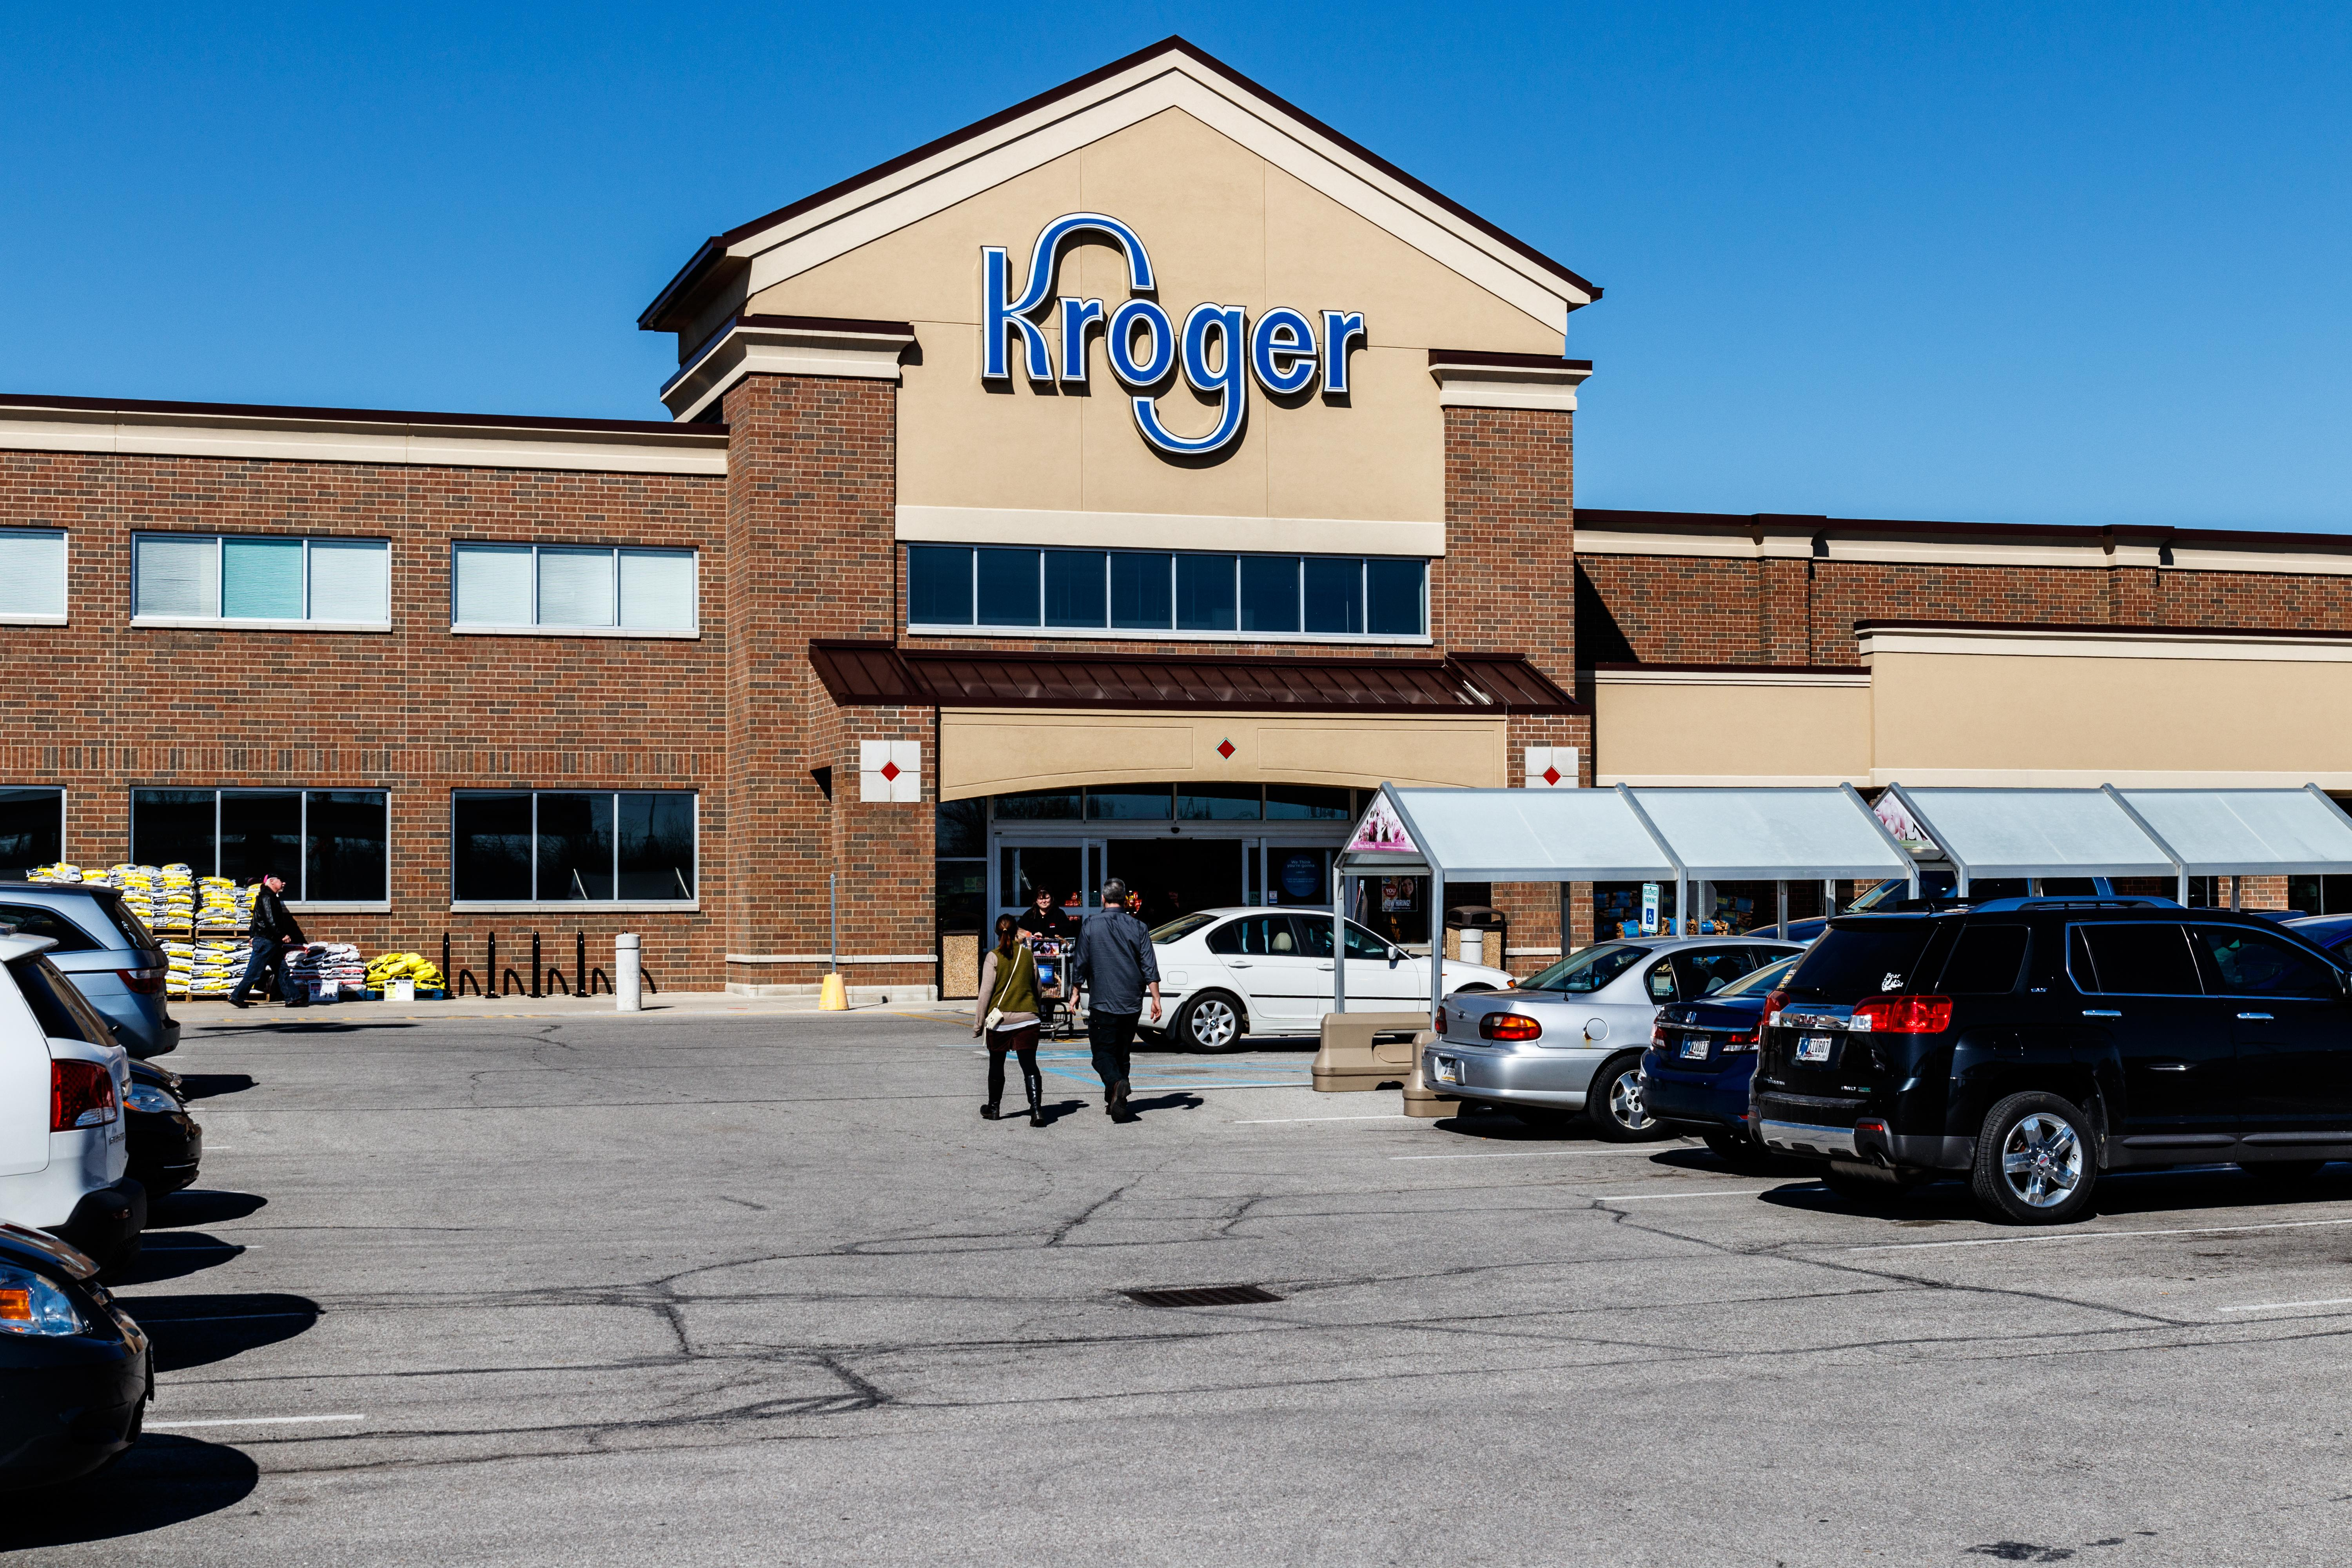 Kroger, Broadcom earnings — What to know in markets Thursday